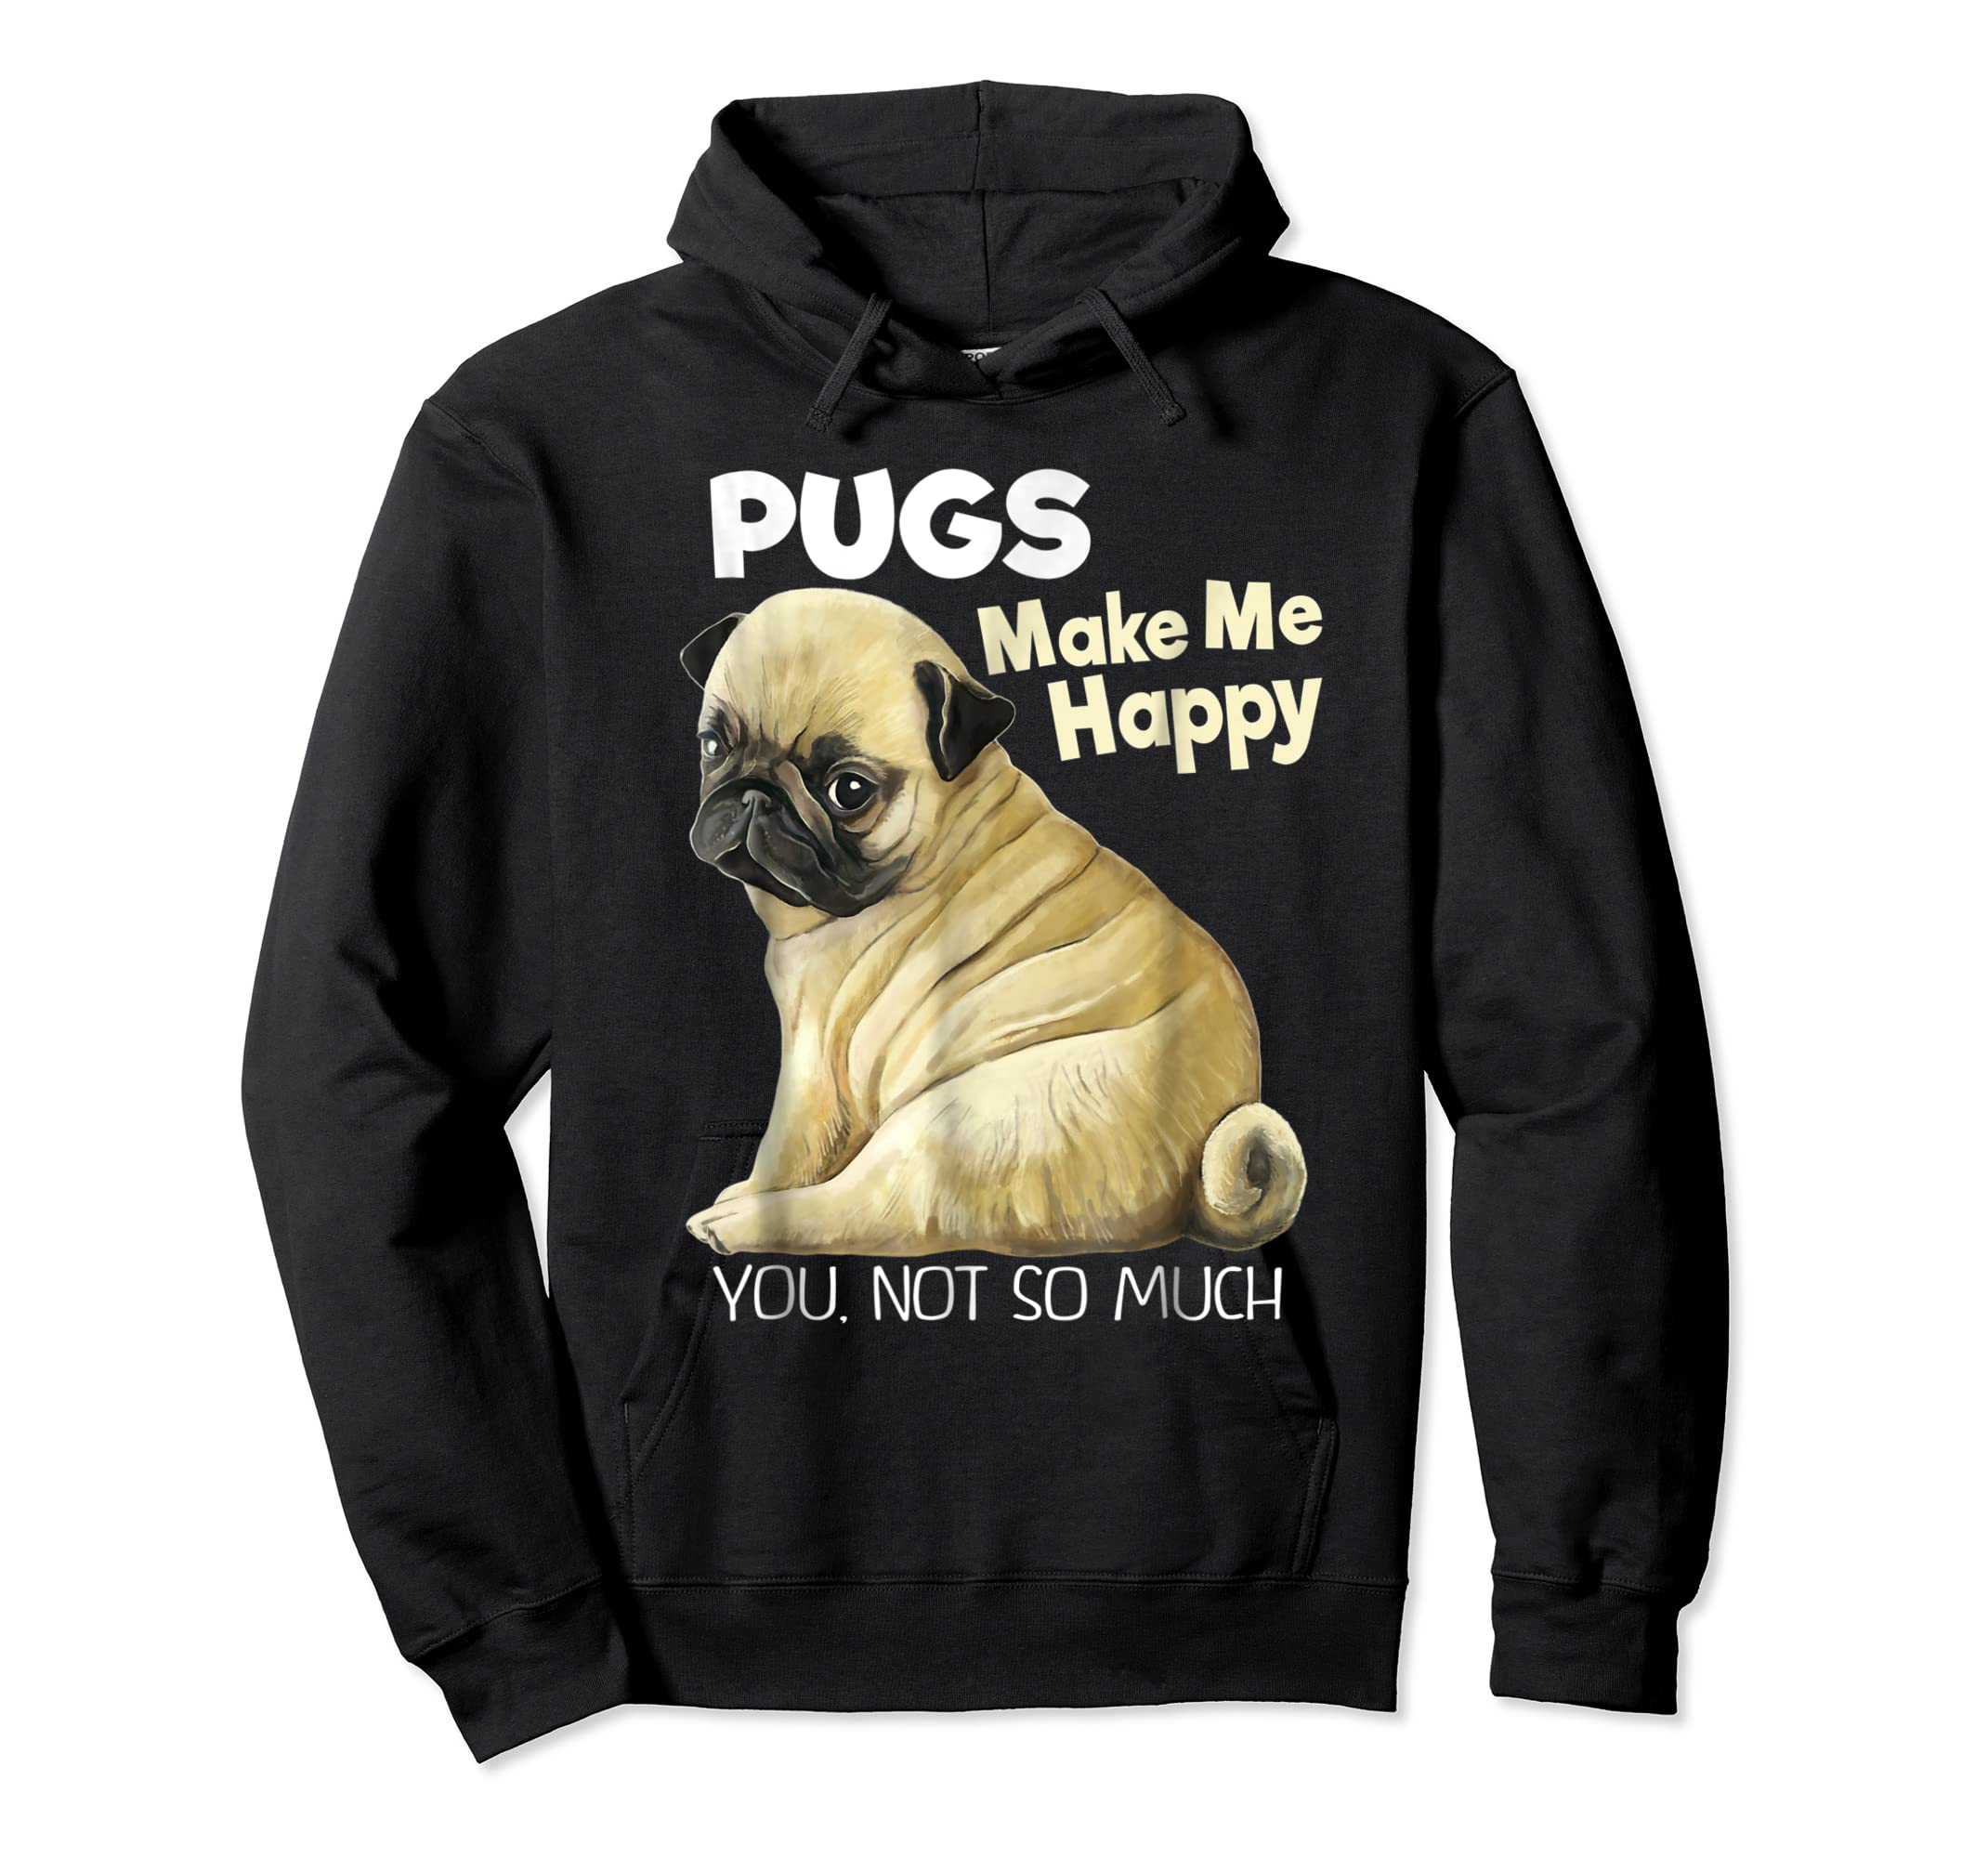 Pug Shirt - Funny T-shirt Pugs Make Me Happy You Not So Much-Hoodie-Black